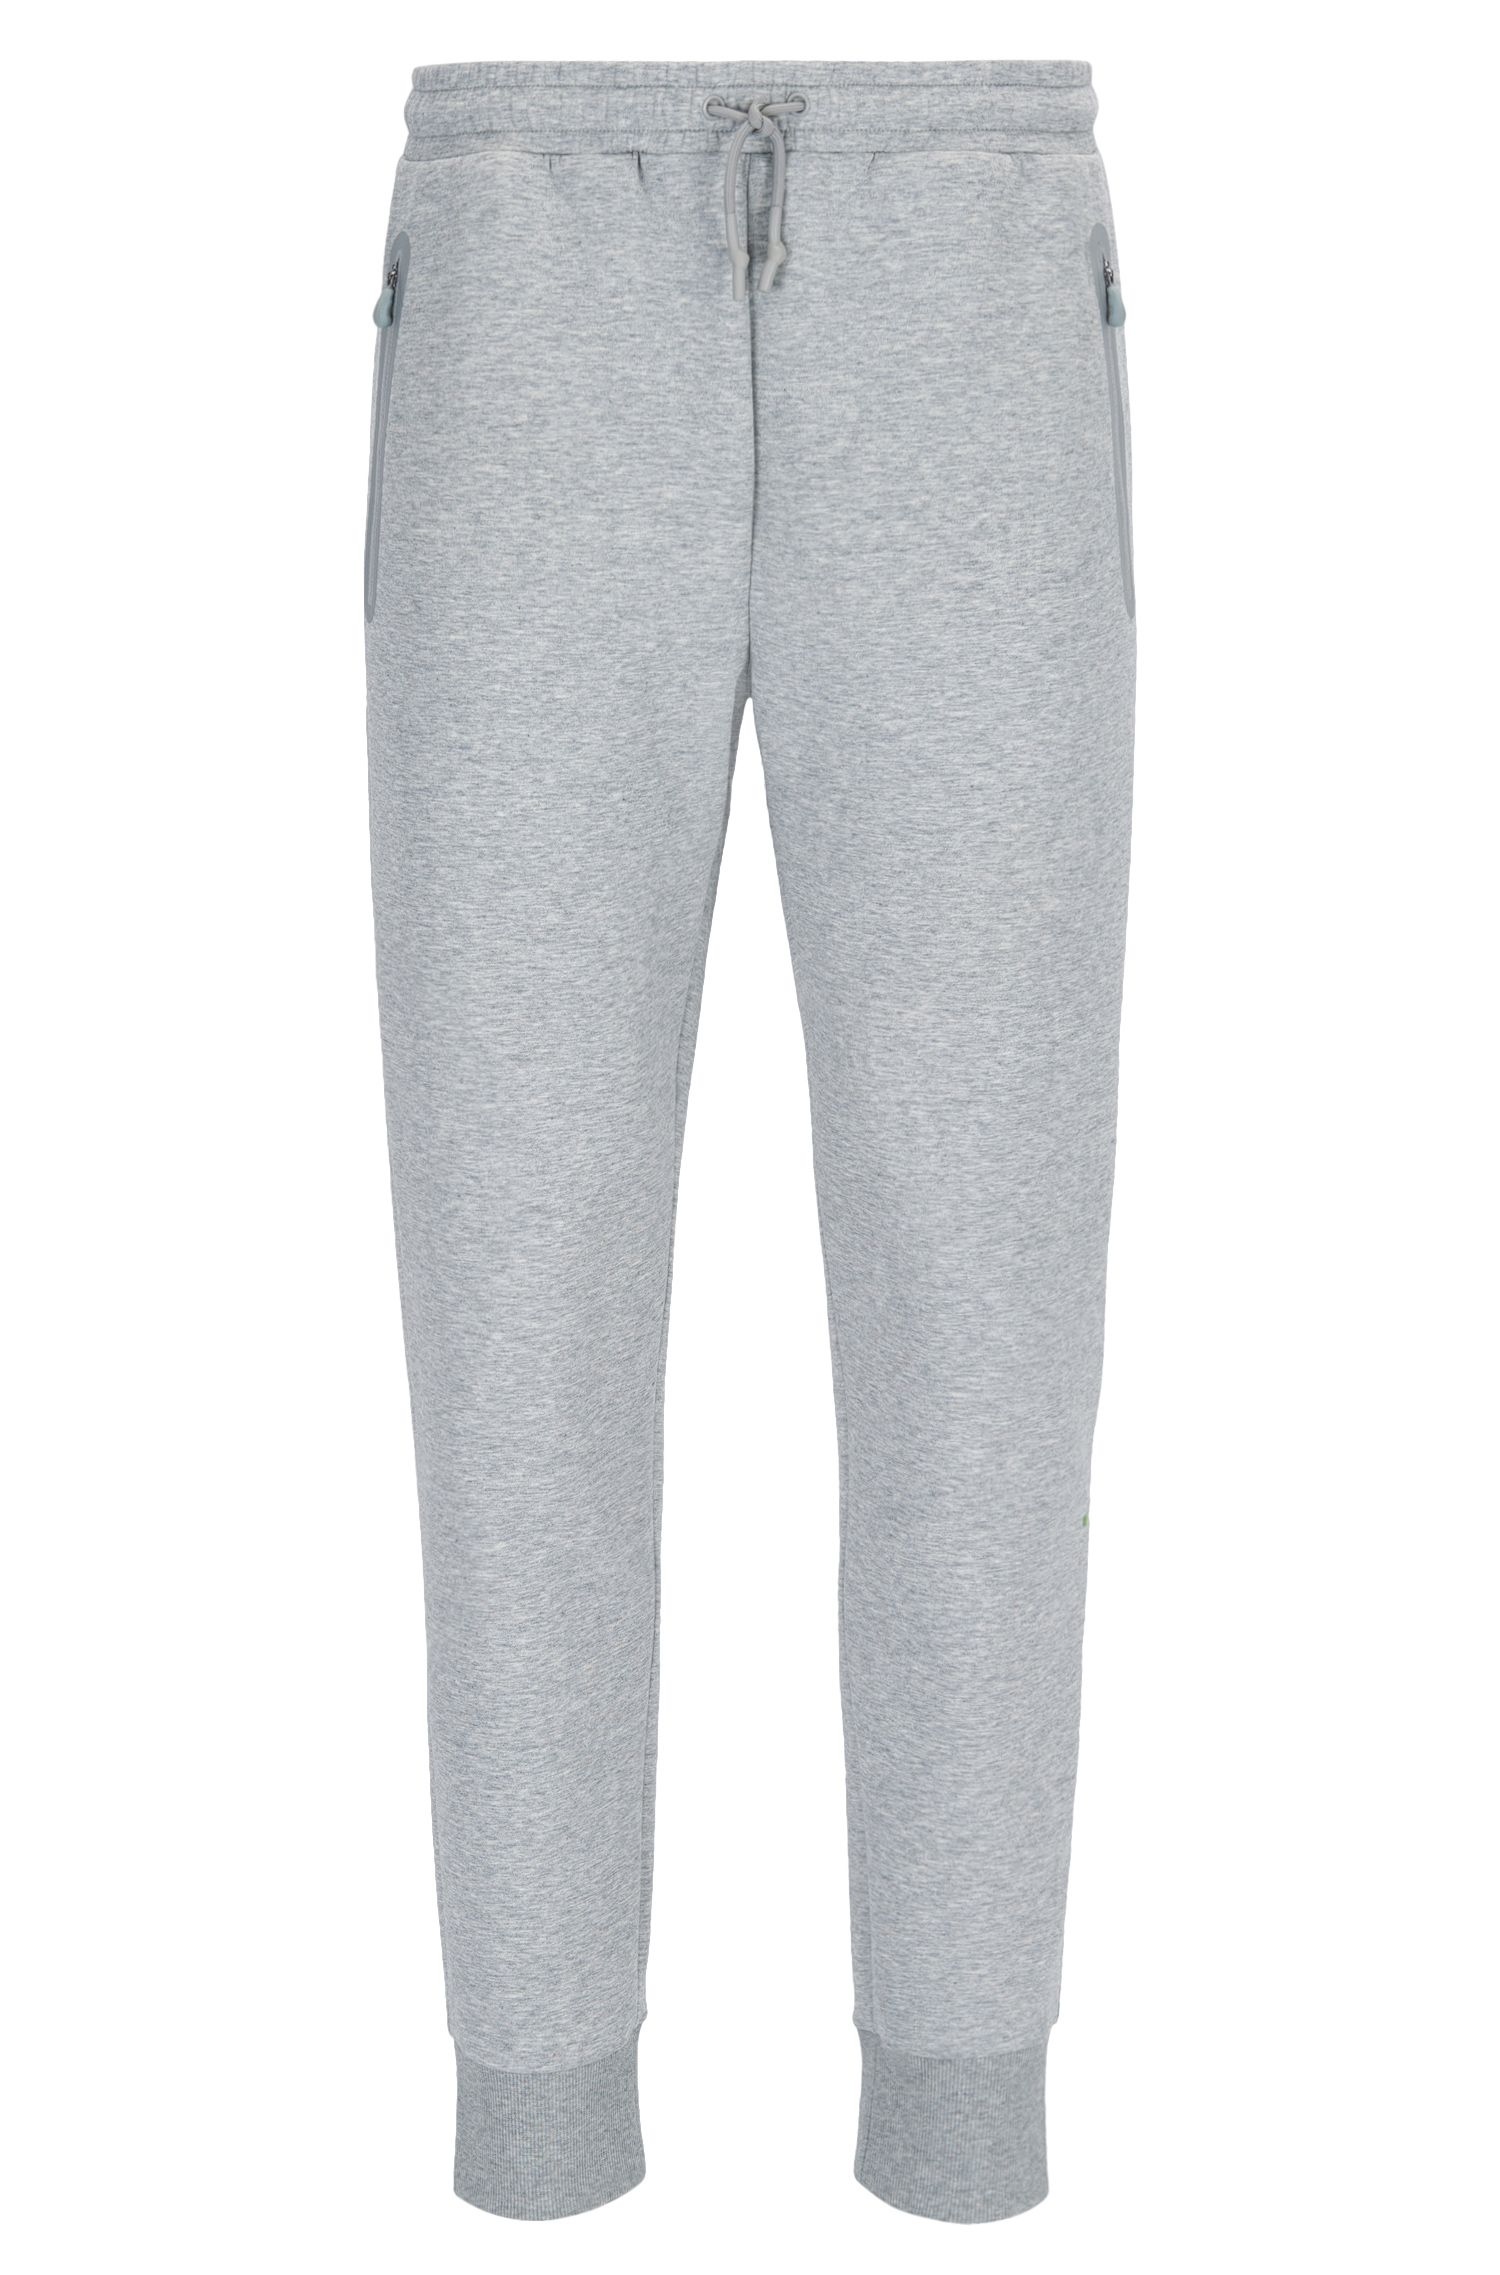 Slim-fit cuffed jogging bottoms in a cotton blend